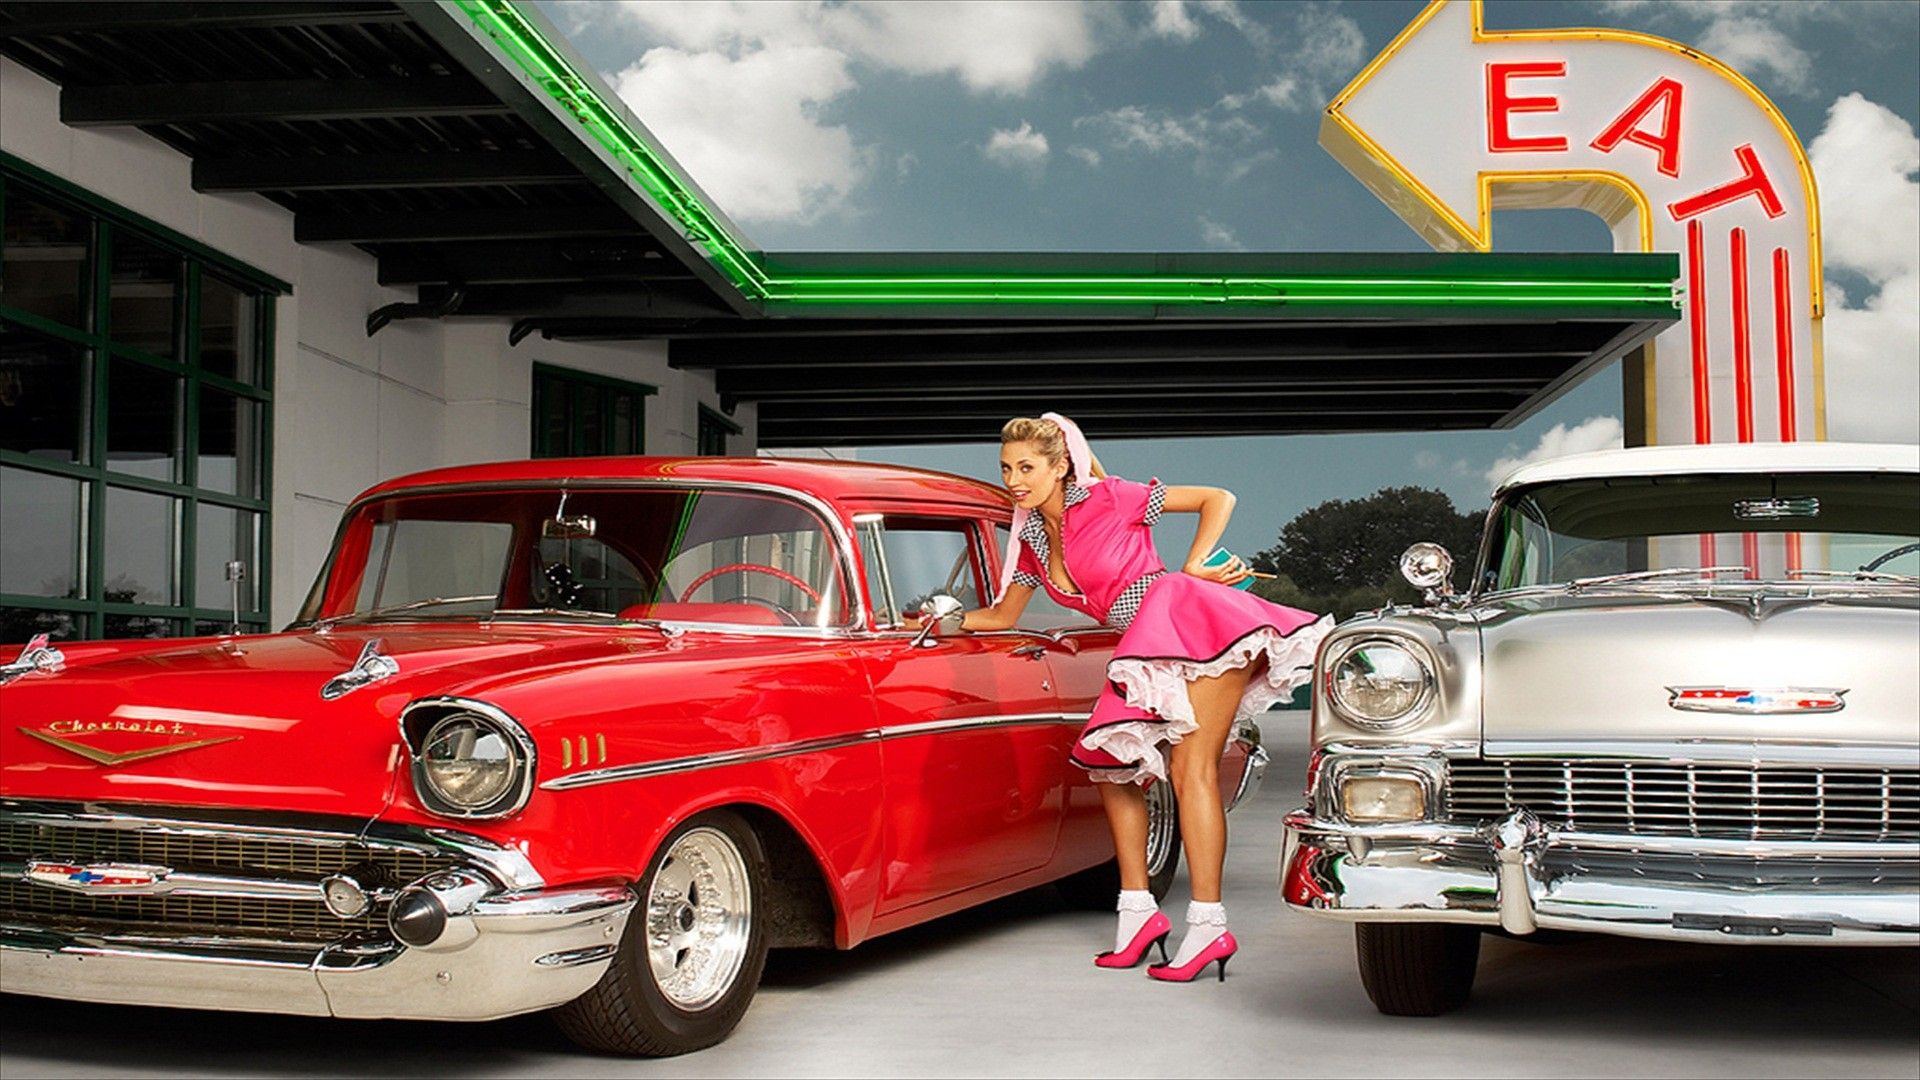 Lowrider Wallpaper Iphone Lowrider Girls Wallpapers 28 Images